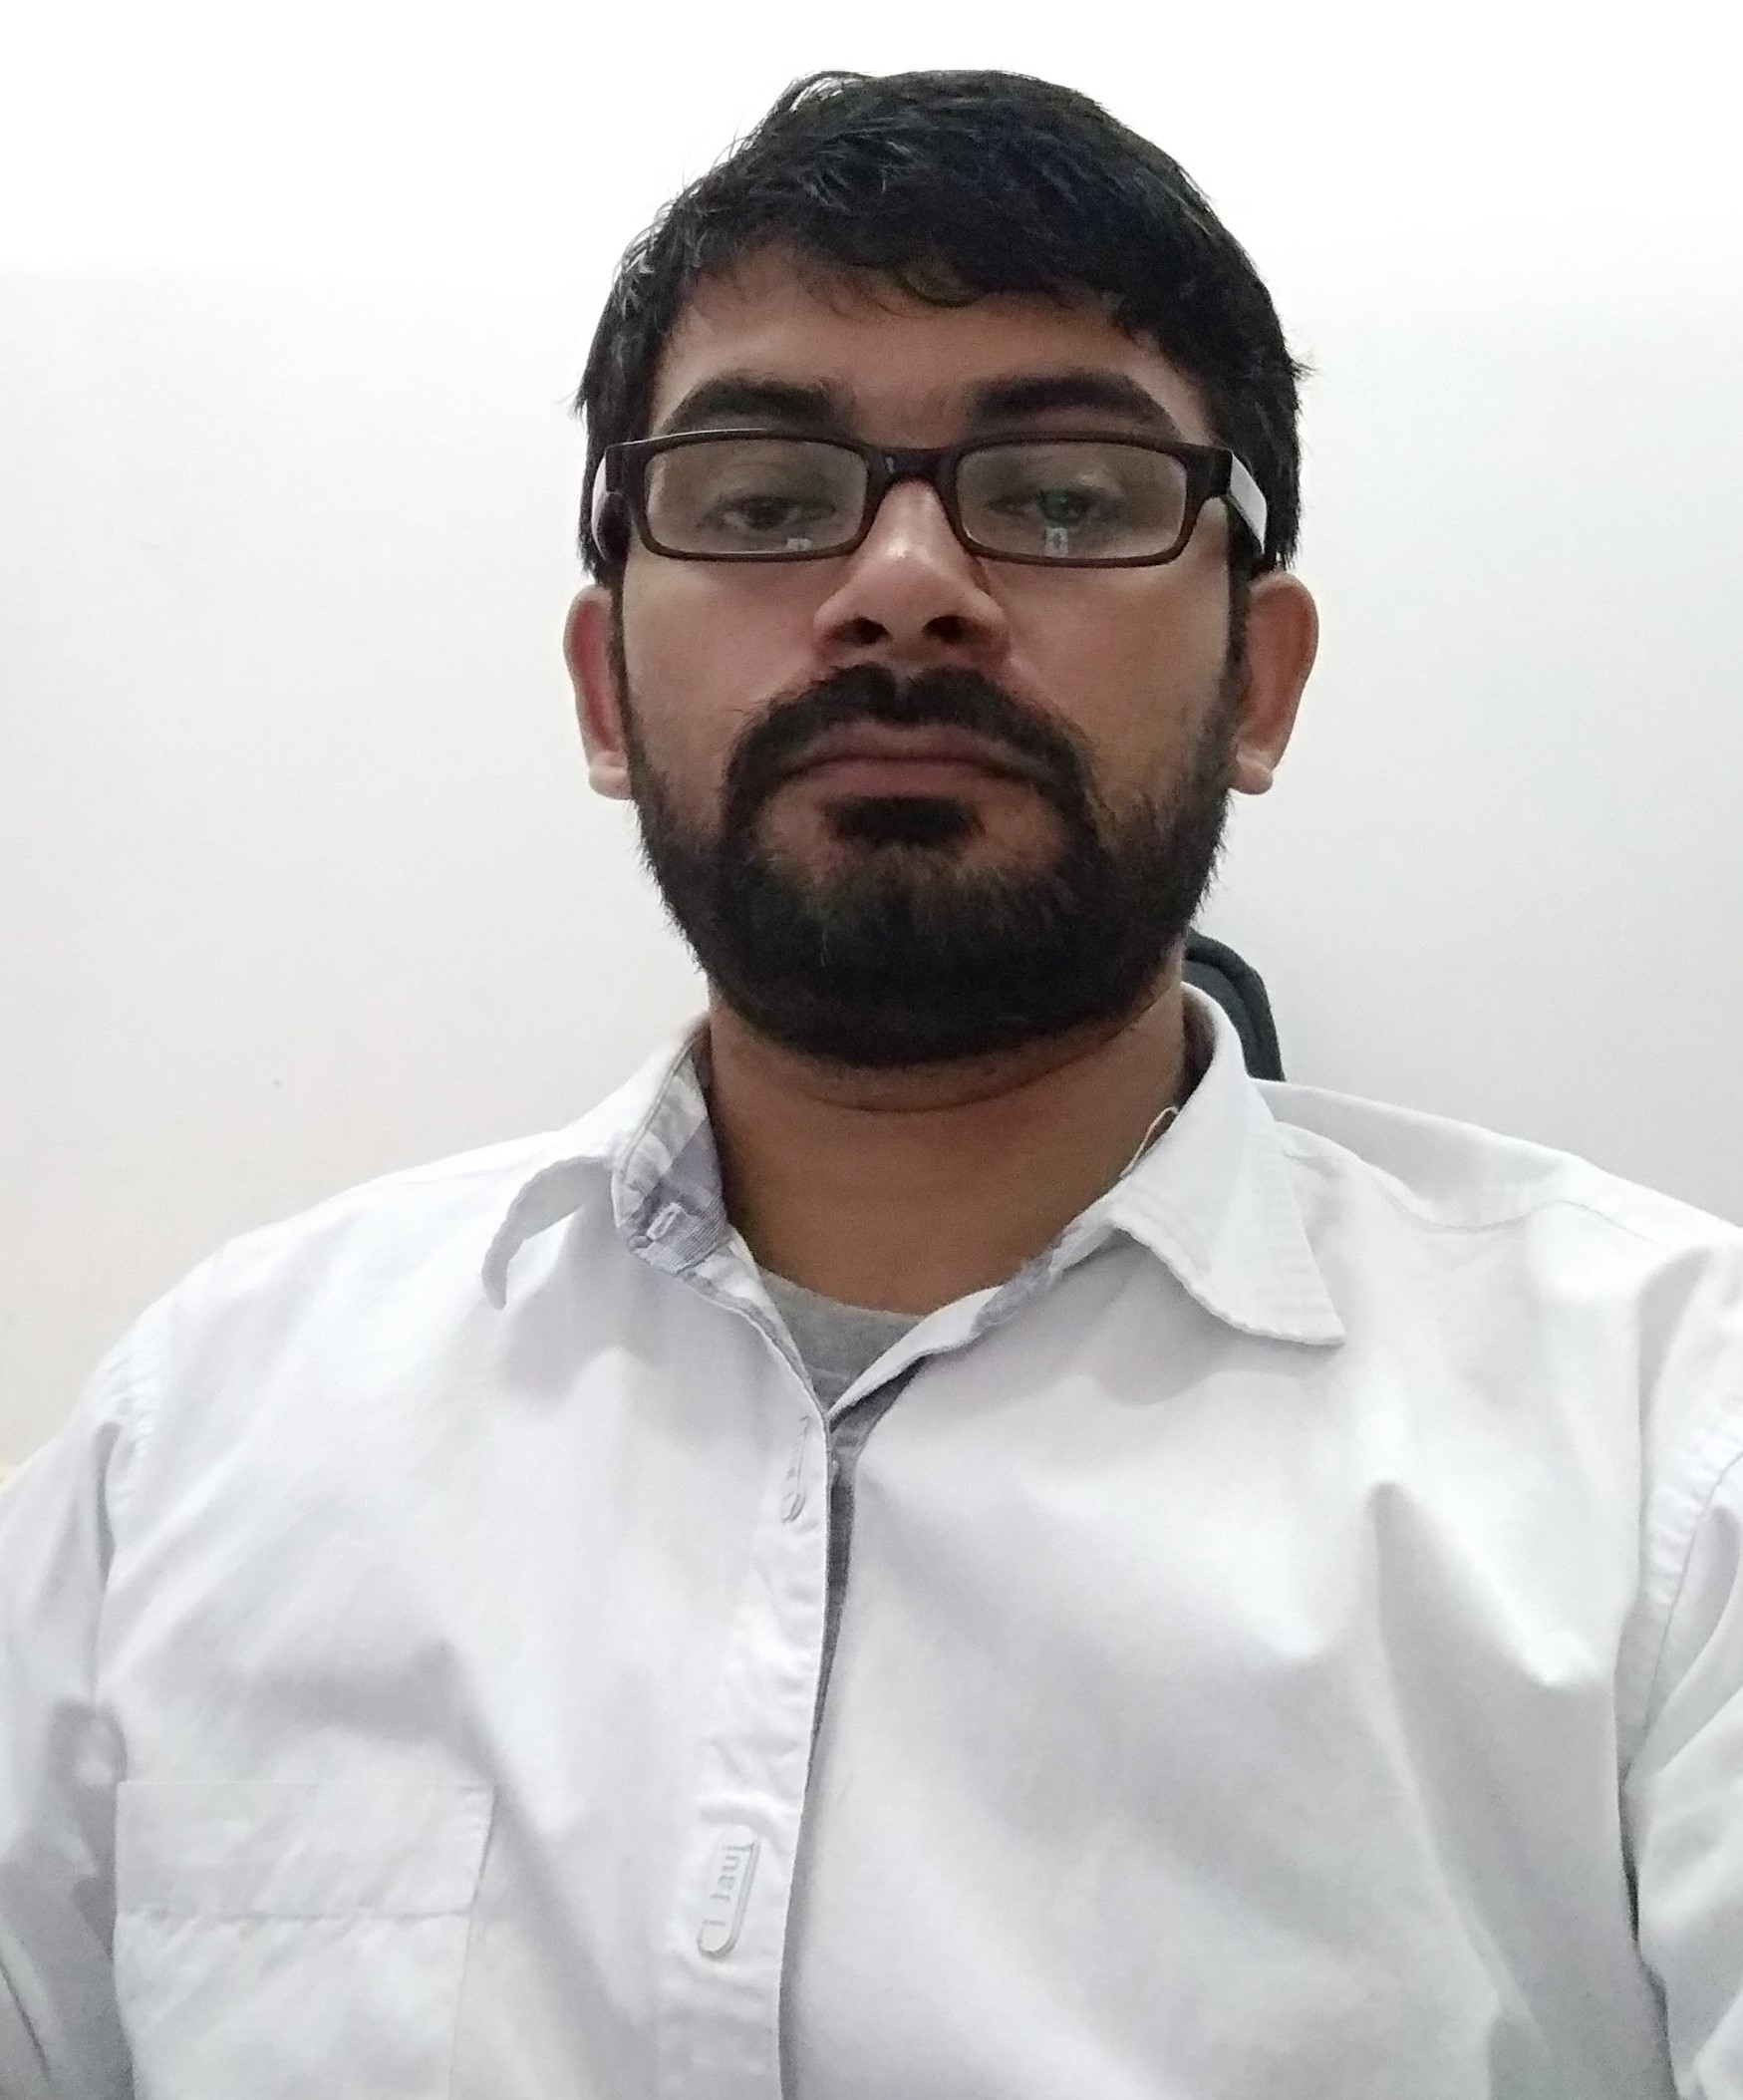 Speaker for Pharma Webinar - Abhishek Chaudhary